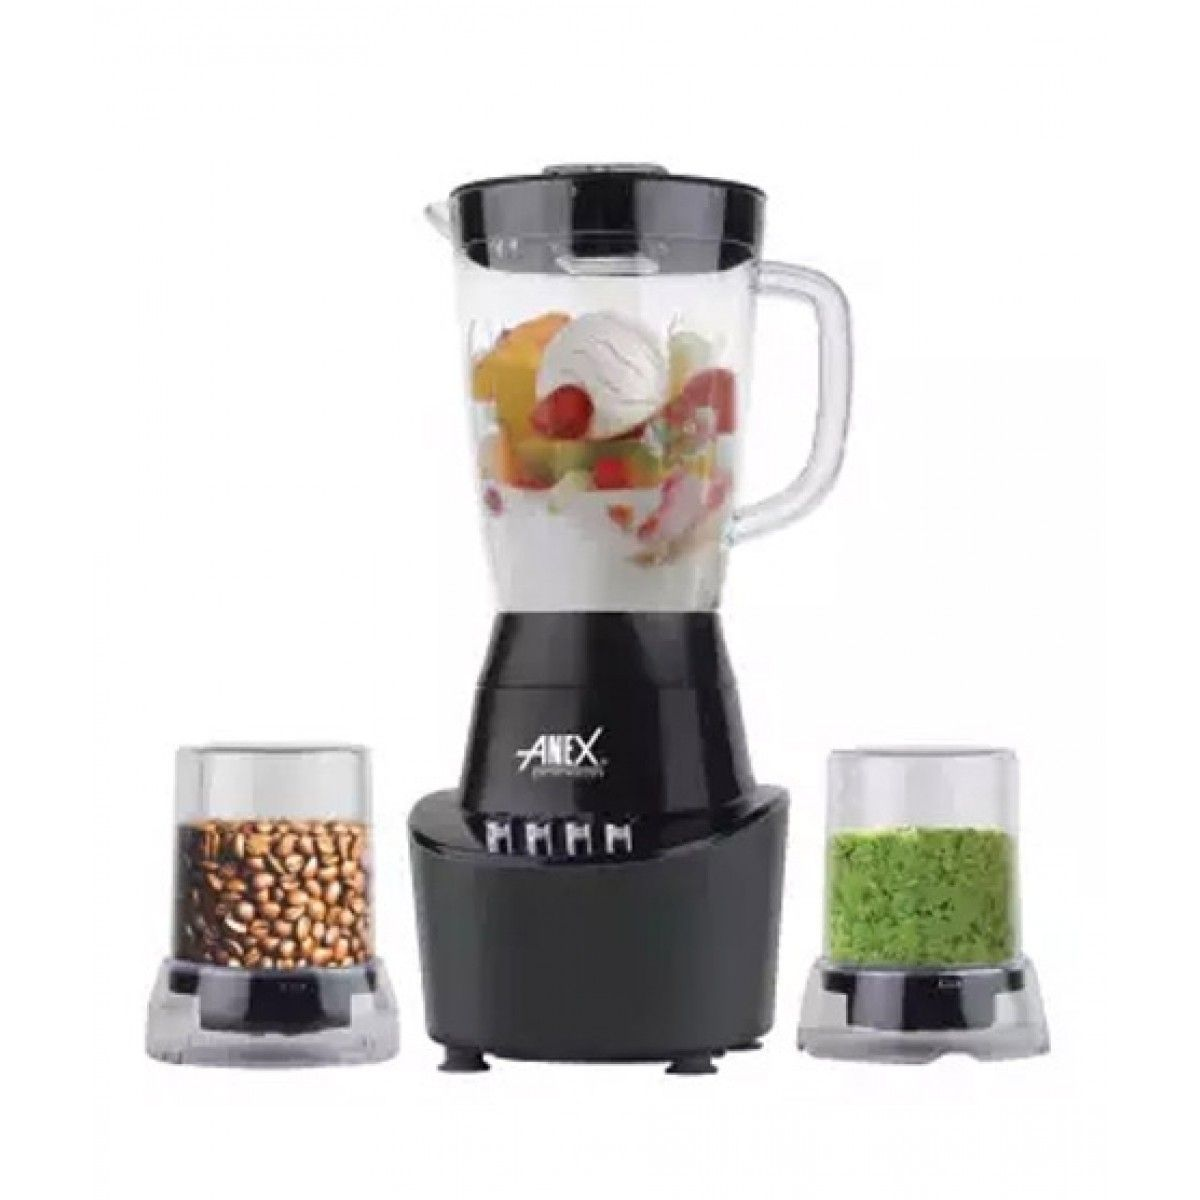 Anex AG-6044 3 in 1 Deluxe Grinder